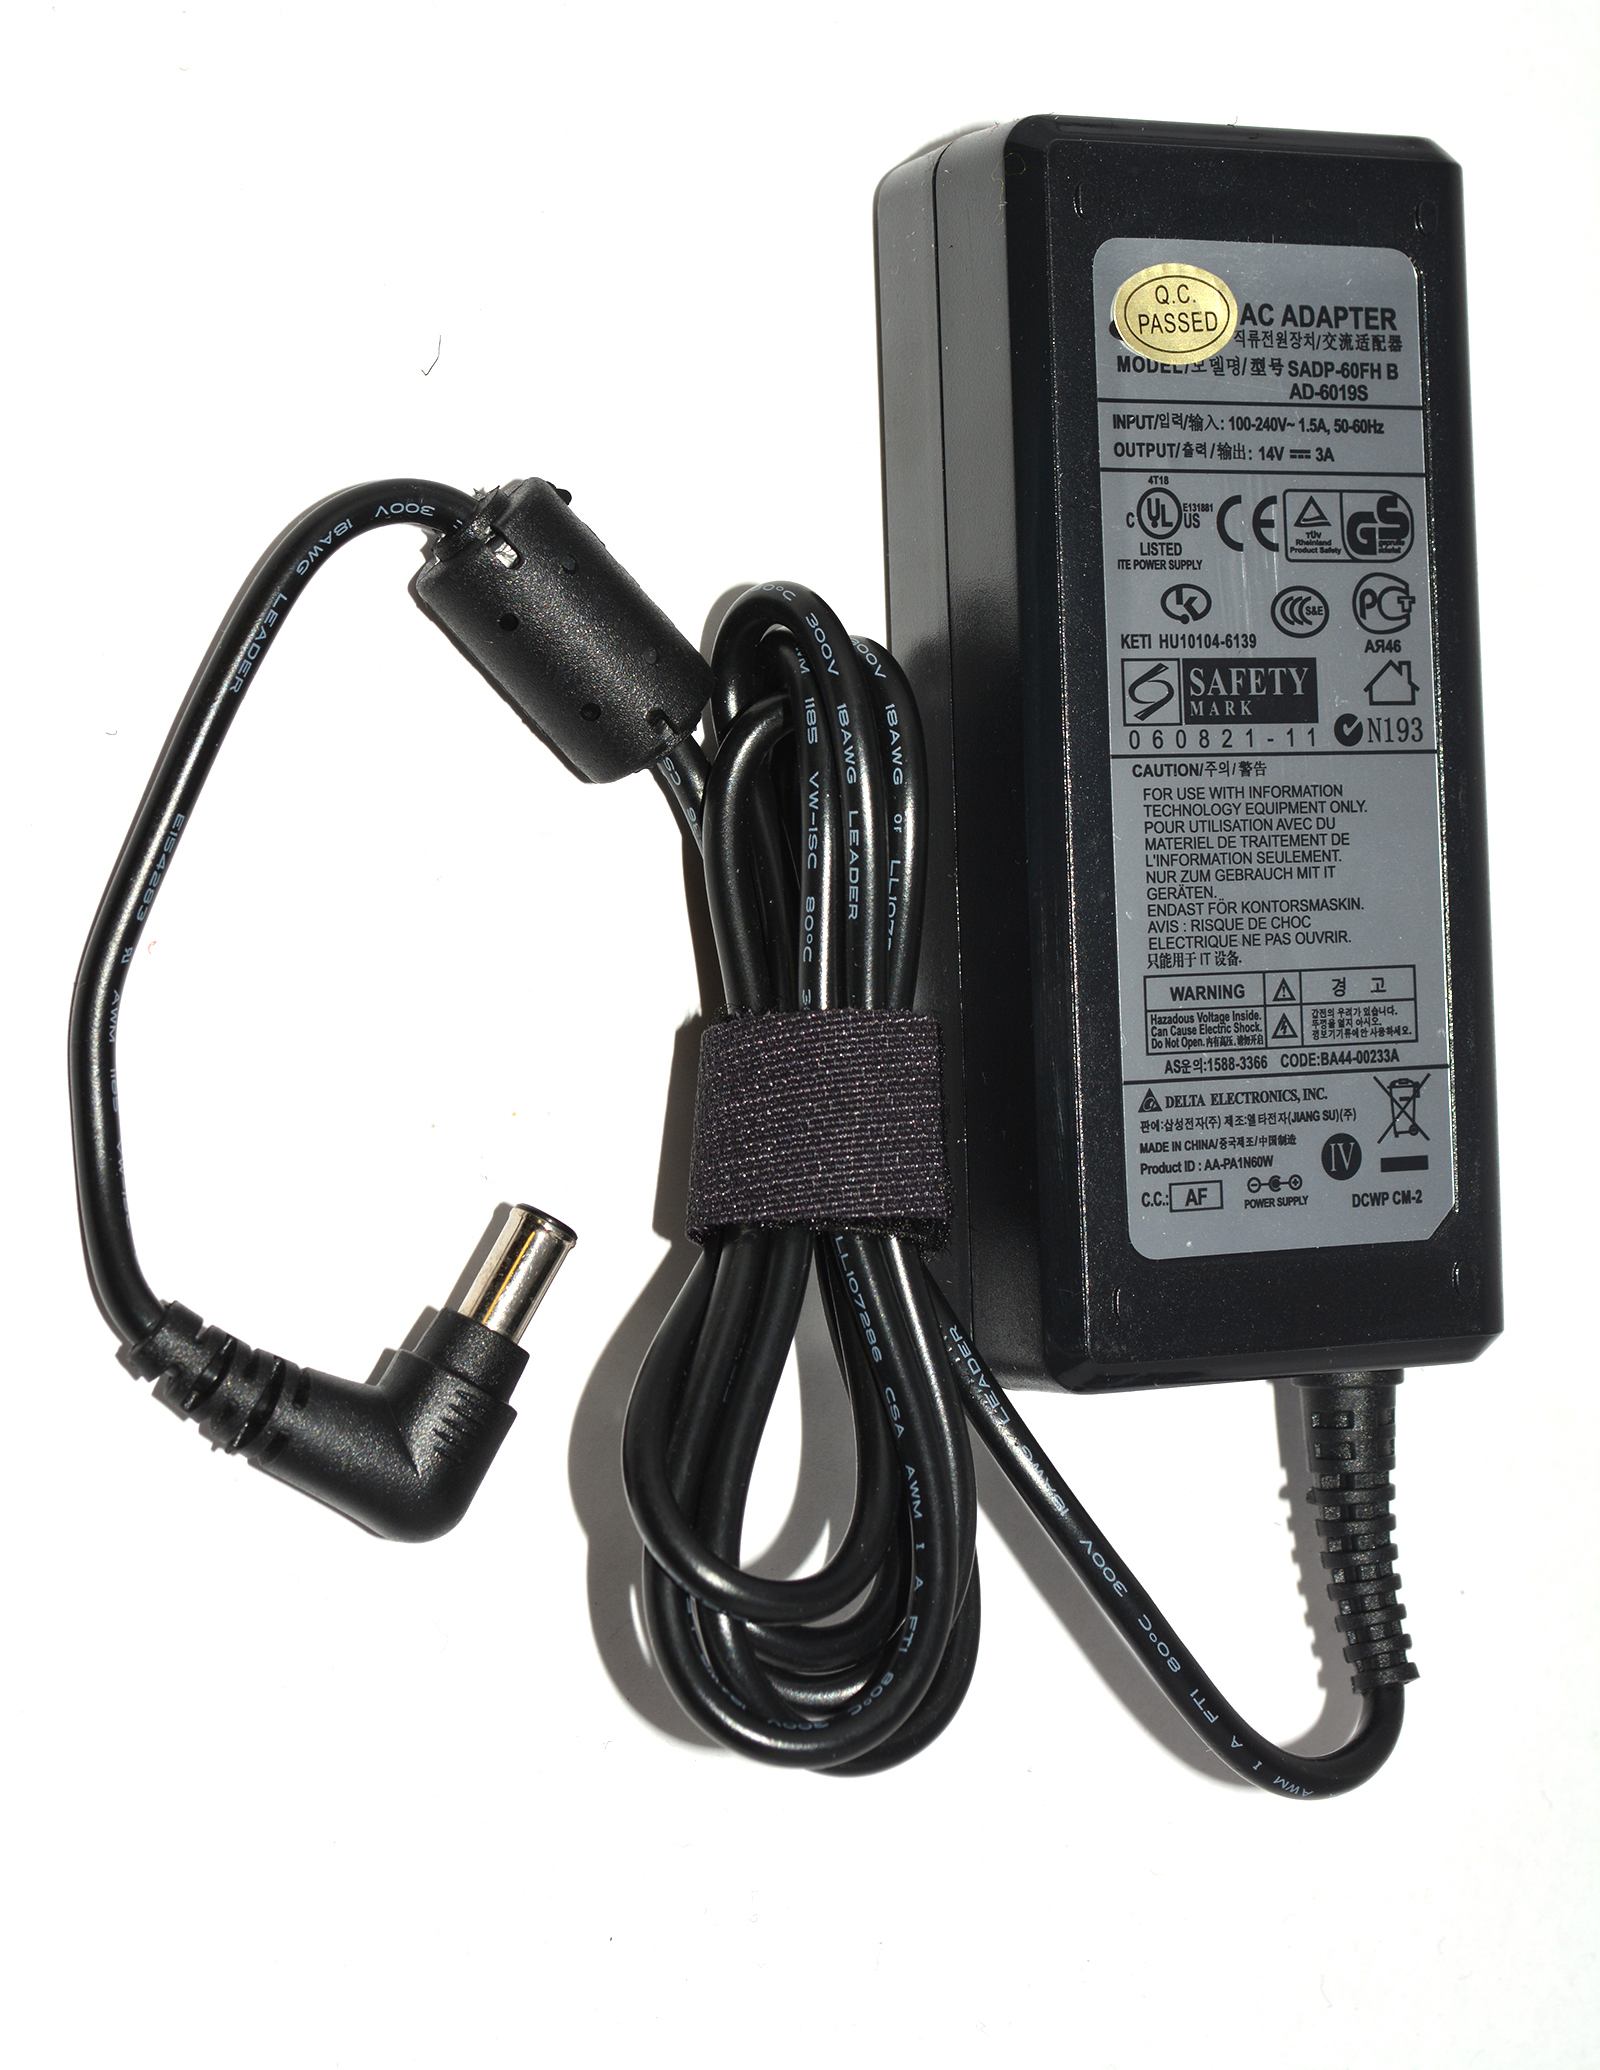 Monitor Power Supply : Samsung s d h tv monitor power supply